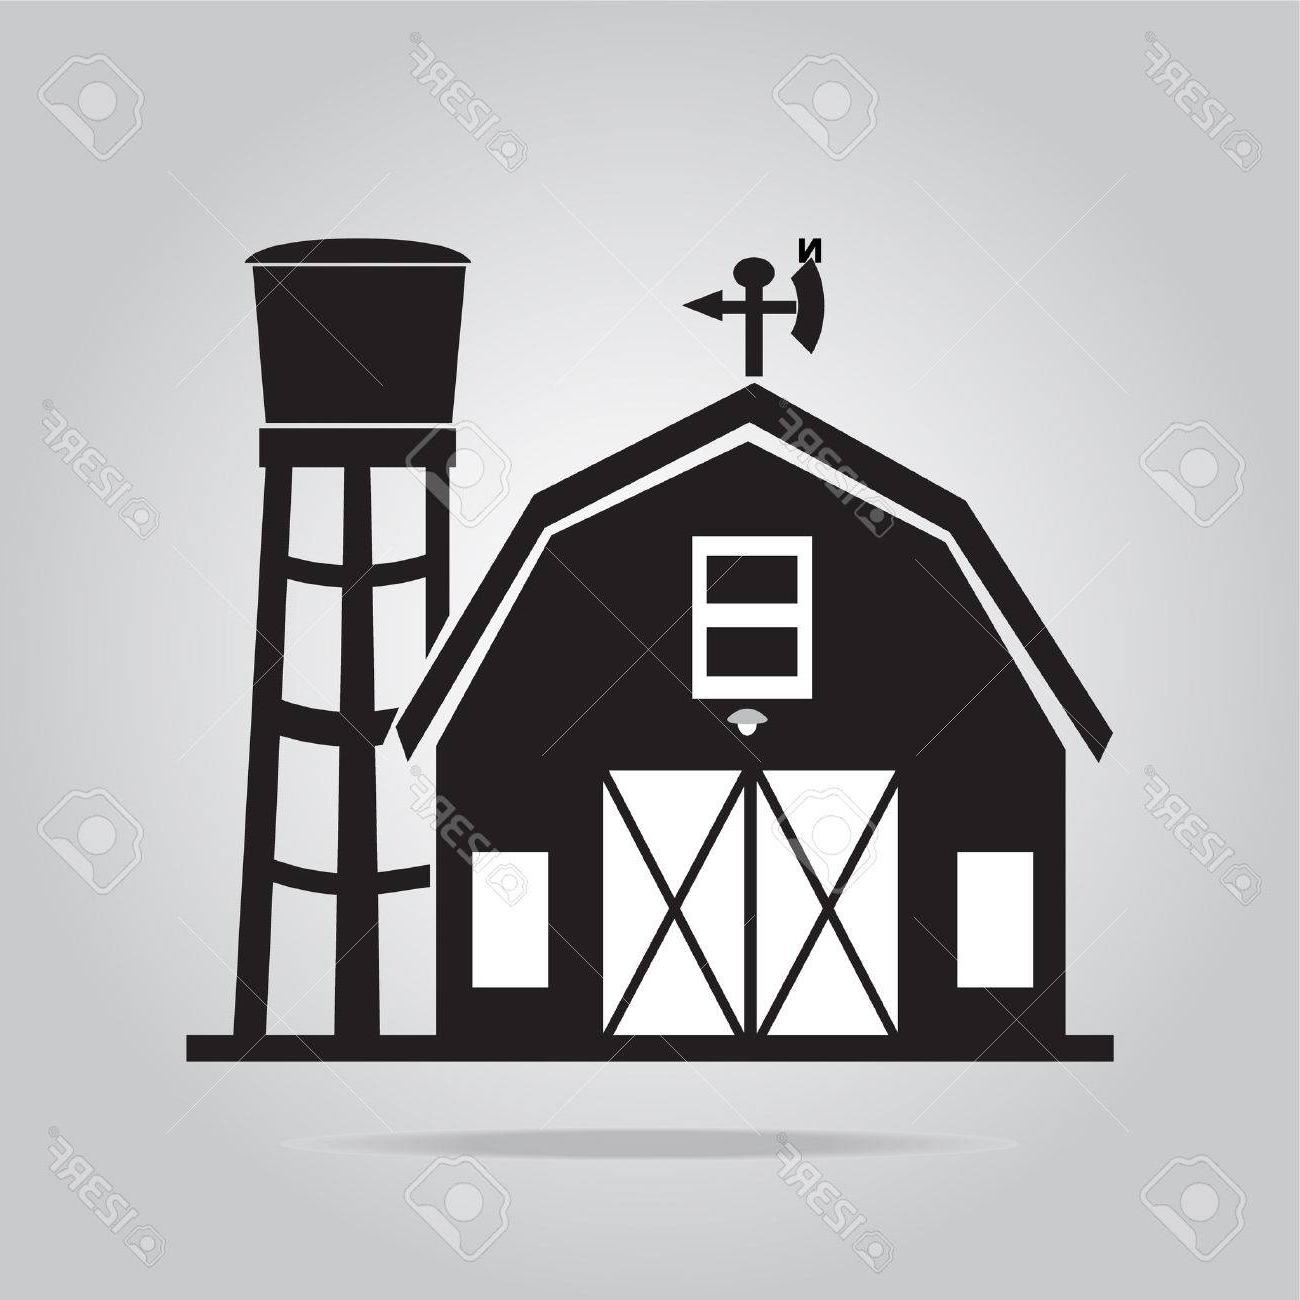 Wide barn clipart clipart freeuse download Best Barn Vector Drawing » Free Vector Art, Images, Graphics ... clipart freeuse download